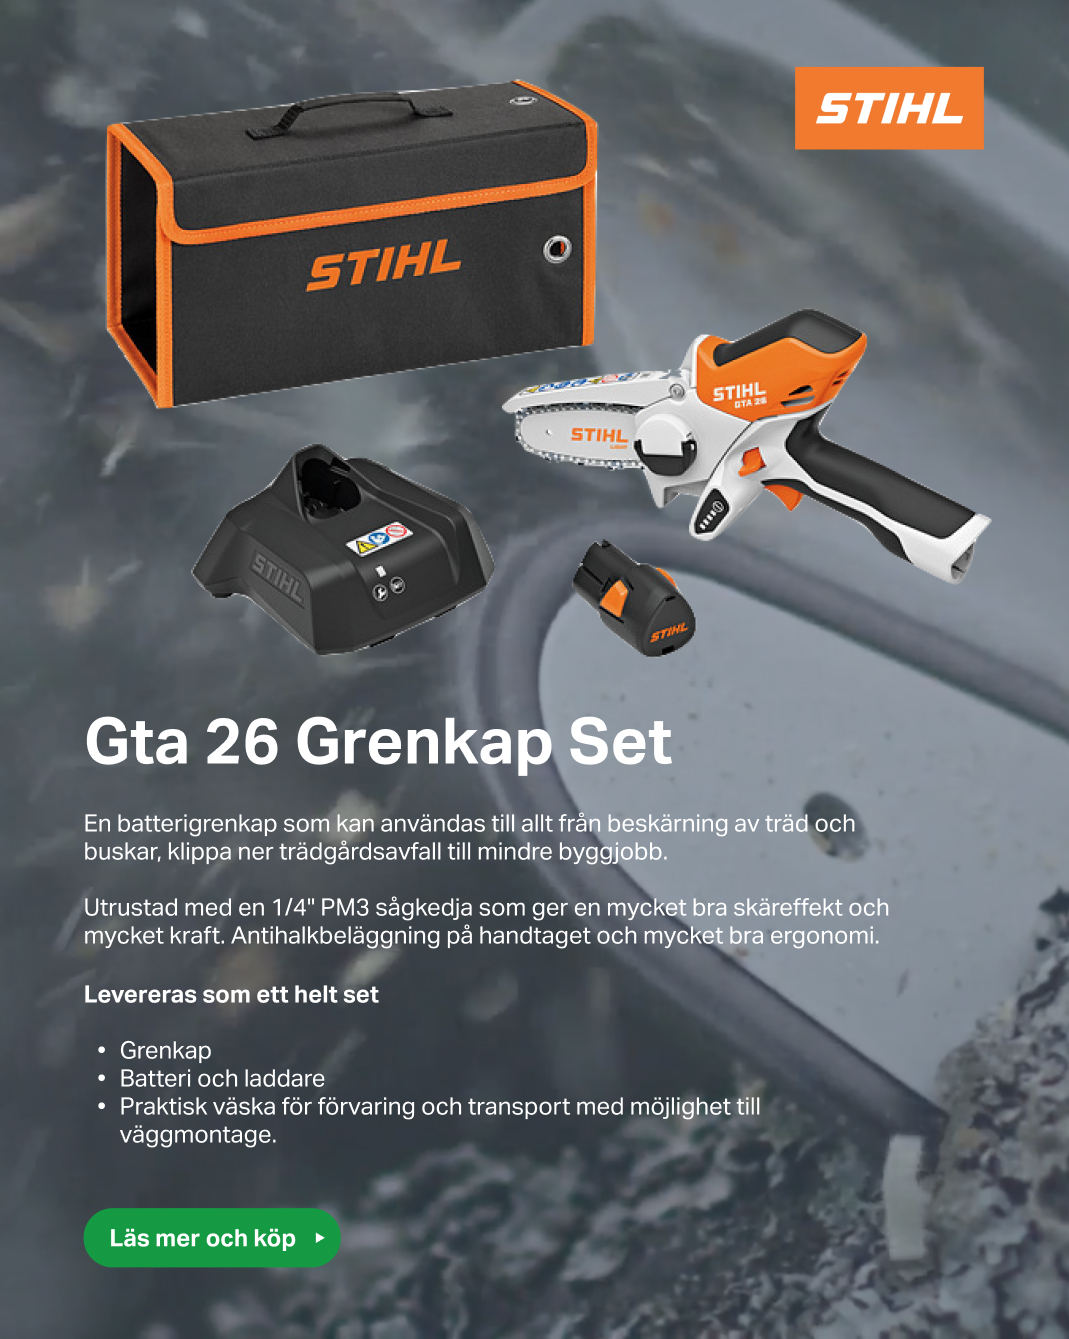 Stihl Gta 26 Grenkap Set